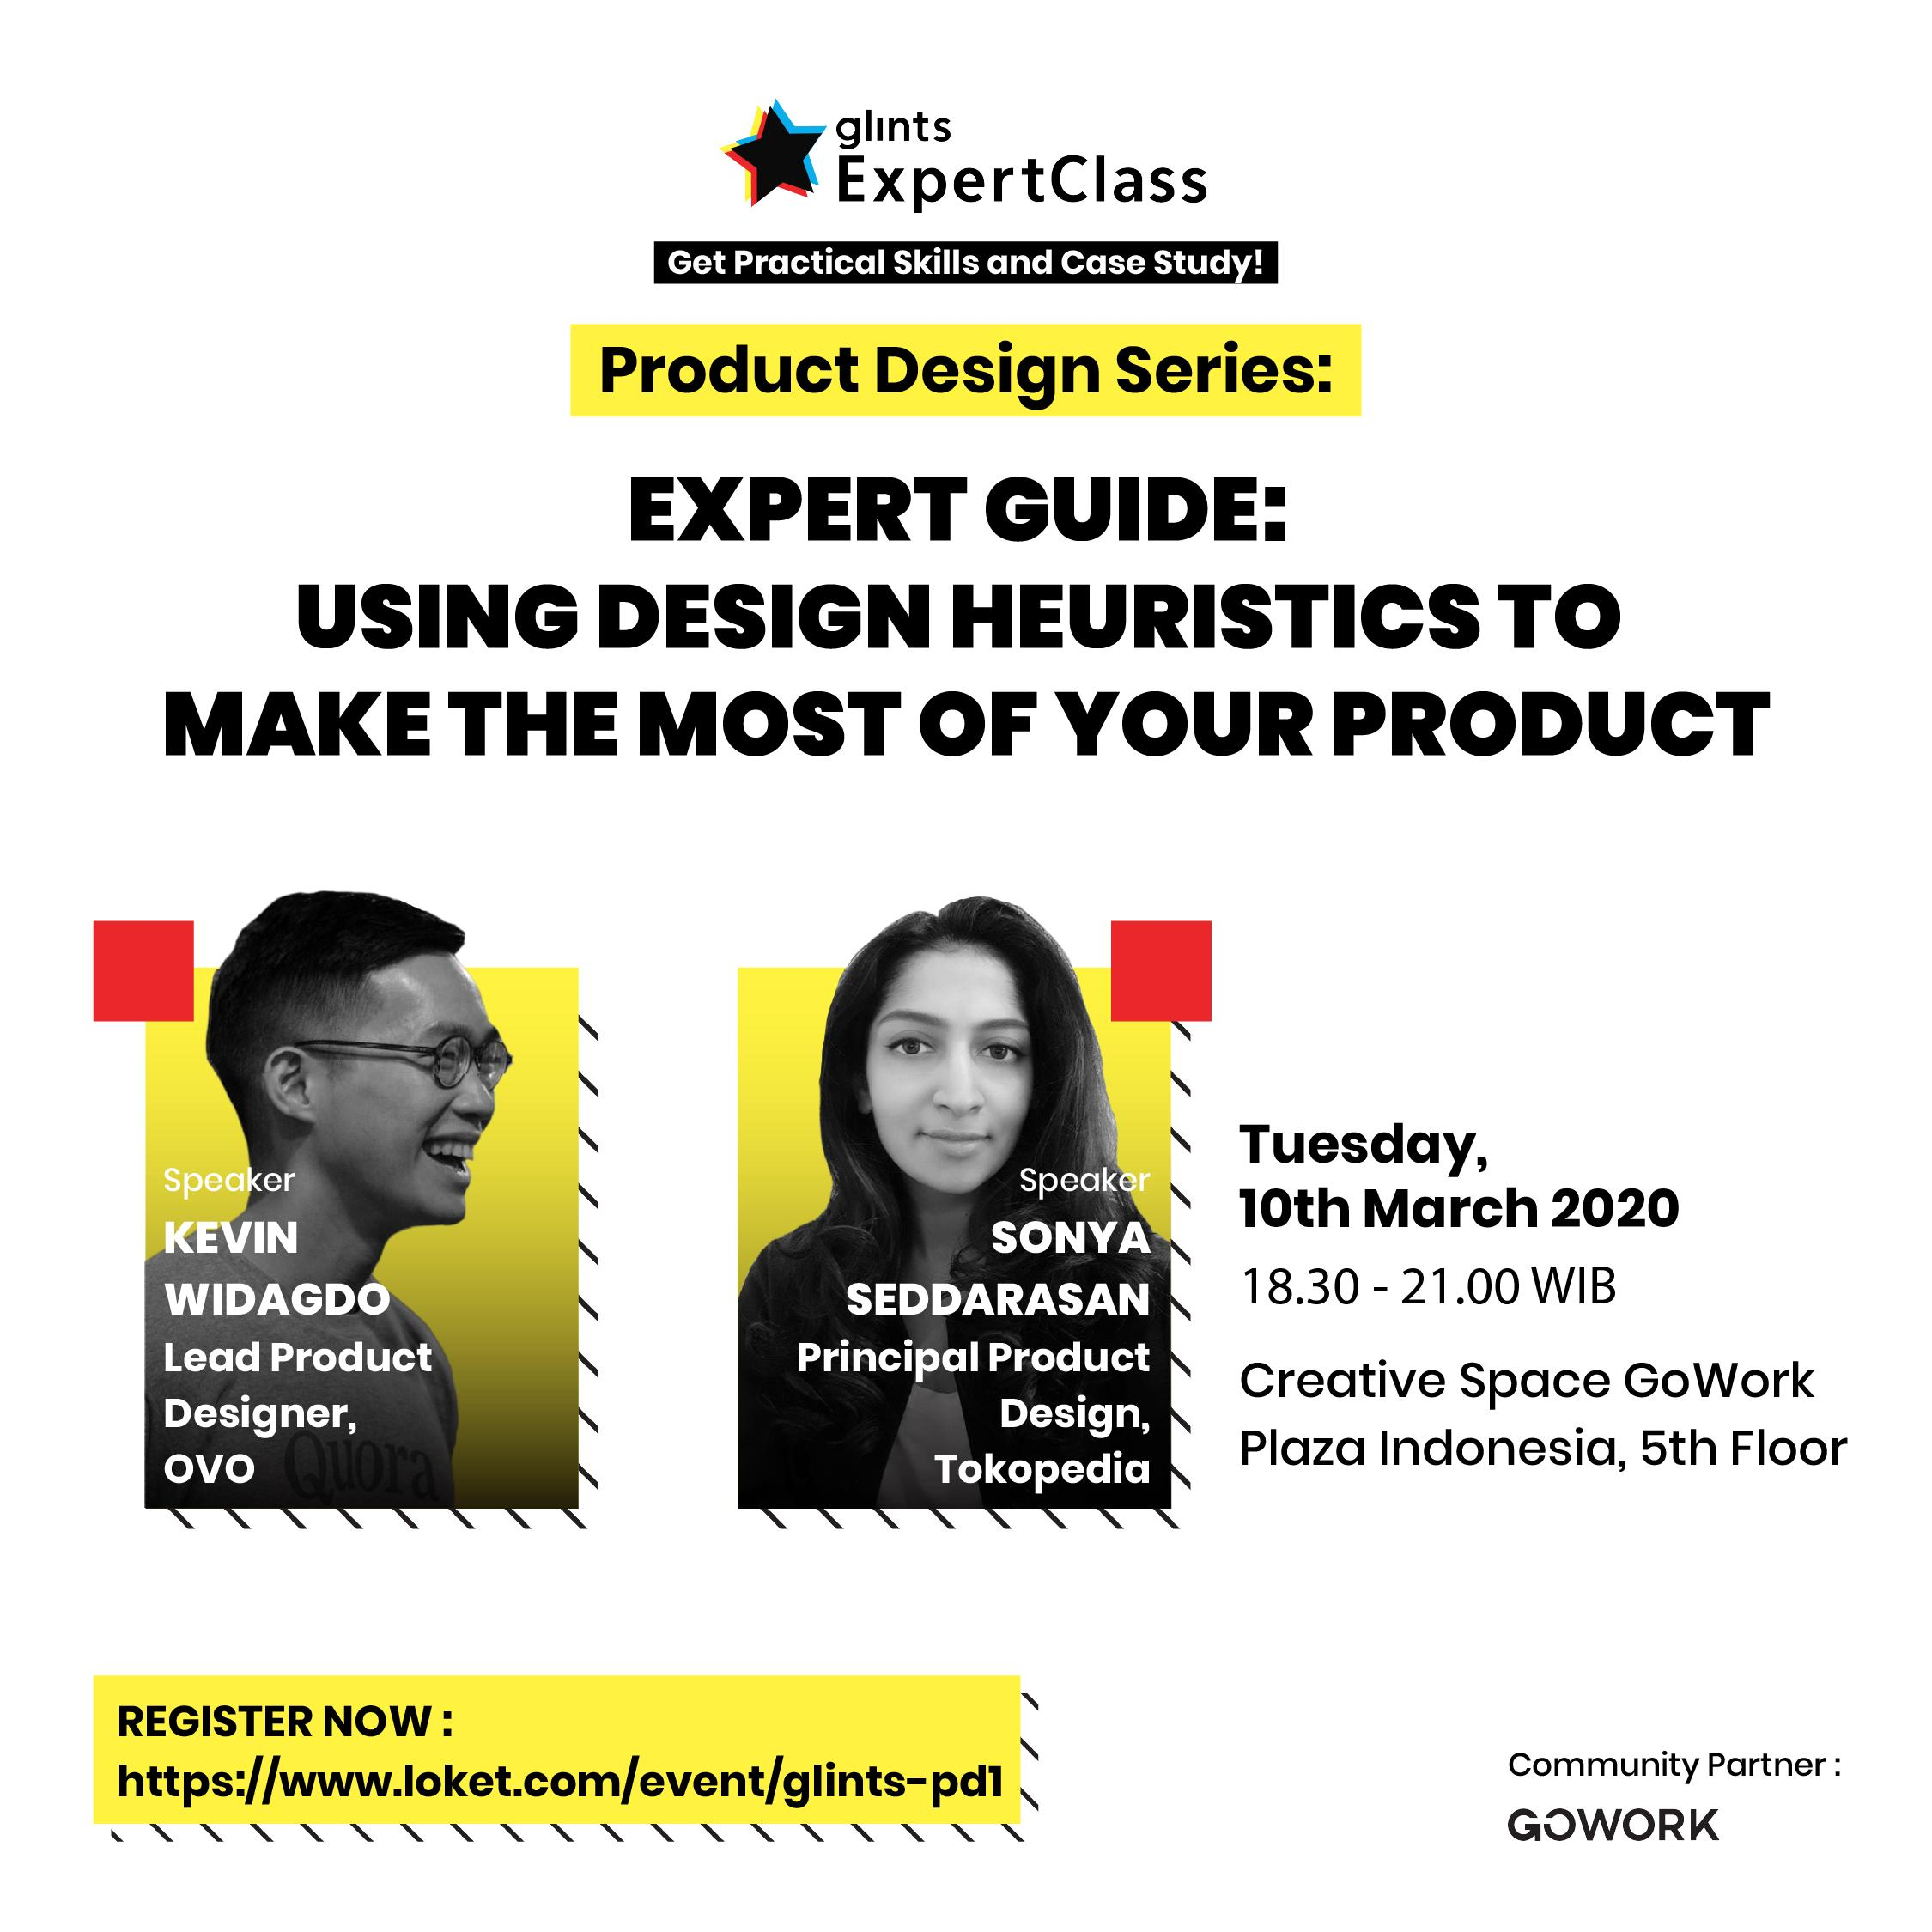 Glints Expert Class - Product Design Series : Using Design Heuristics To Make The Most Of Your Product